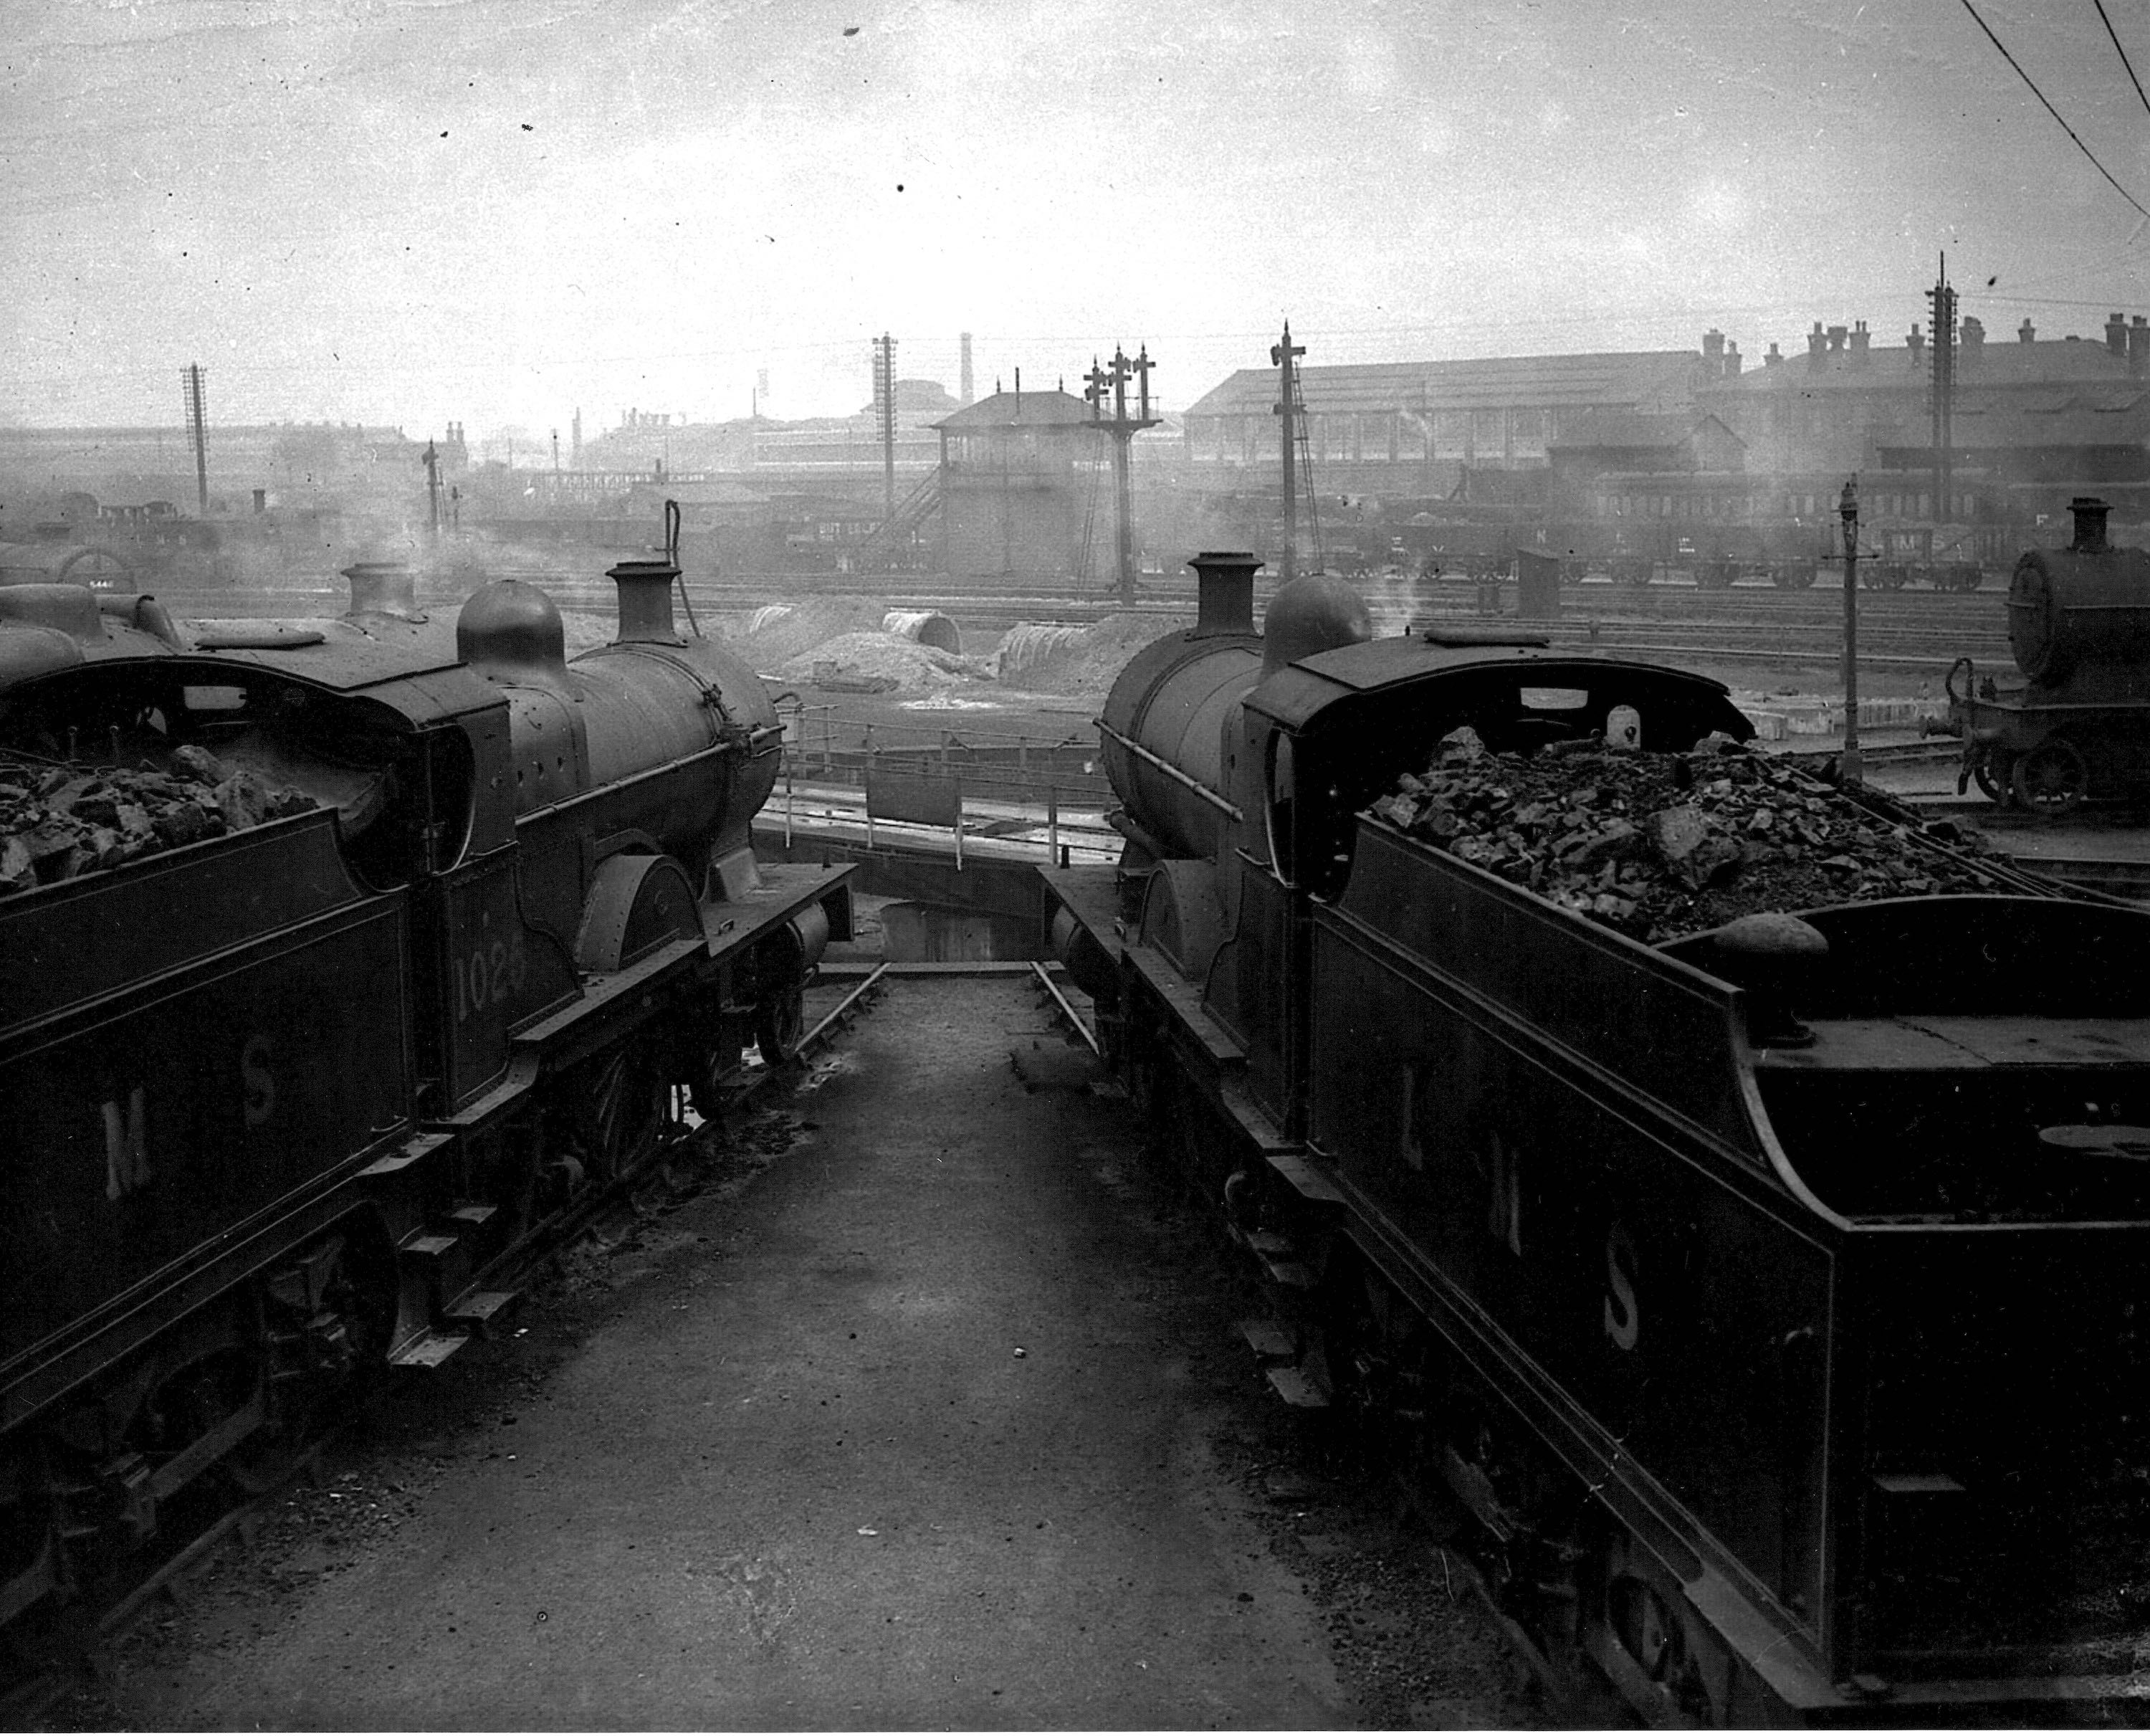 A photograph taken with two locomotives in the foreground stabled around a turntable at Derby's 'Four Shed'. We are looking over to Way & Works signal box with air raid shelters being contructed in the middle-distance. The LMS research laboratories on London Road are visible in the background.